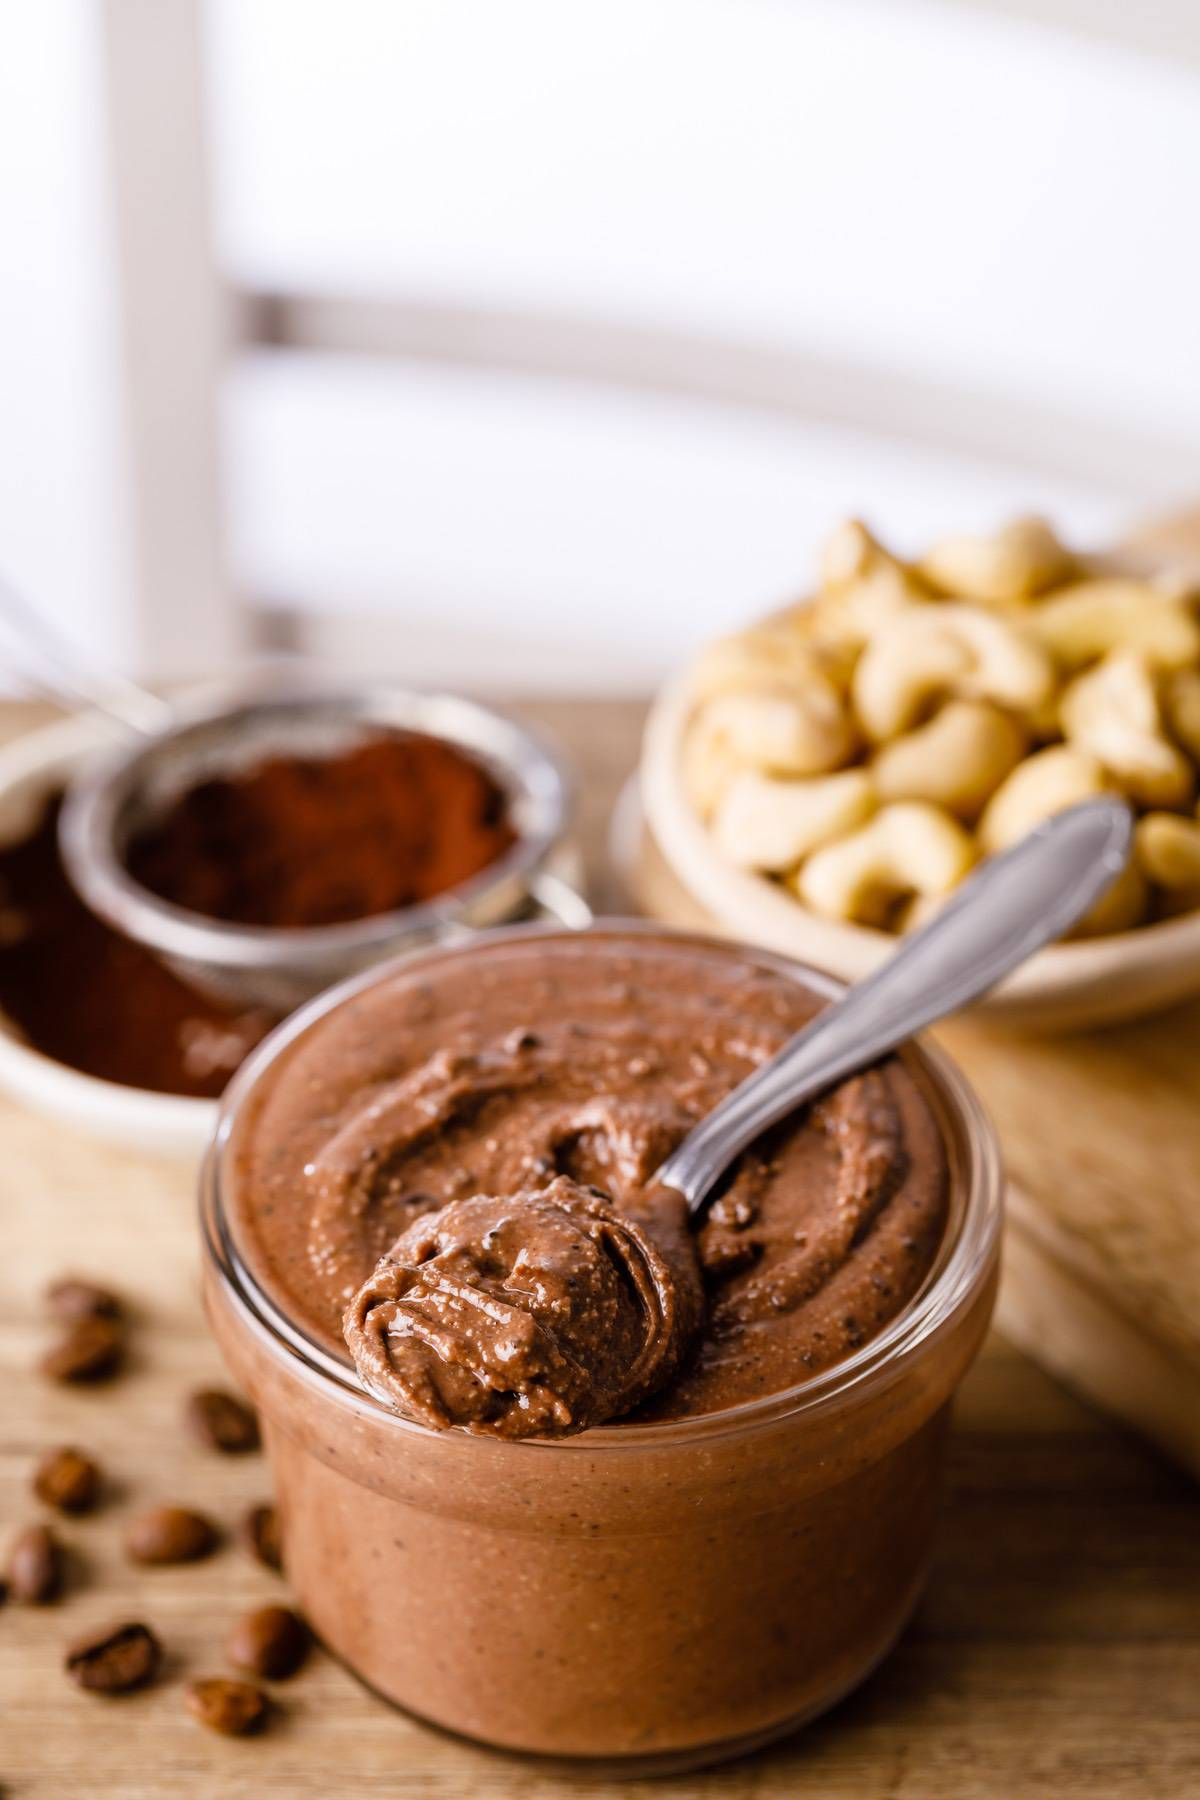 Home.fit espresso-cashew-butter-4 Spreadable Espresso Cashew Butter (Good on everything!)